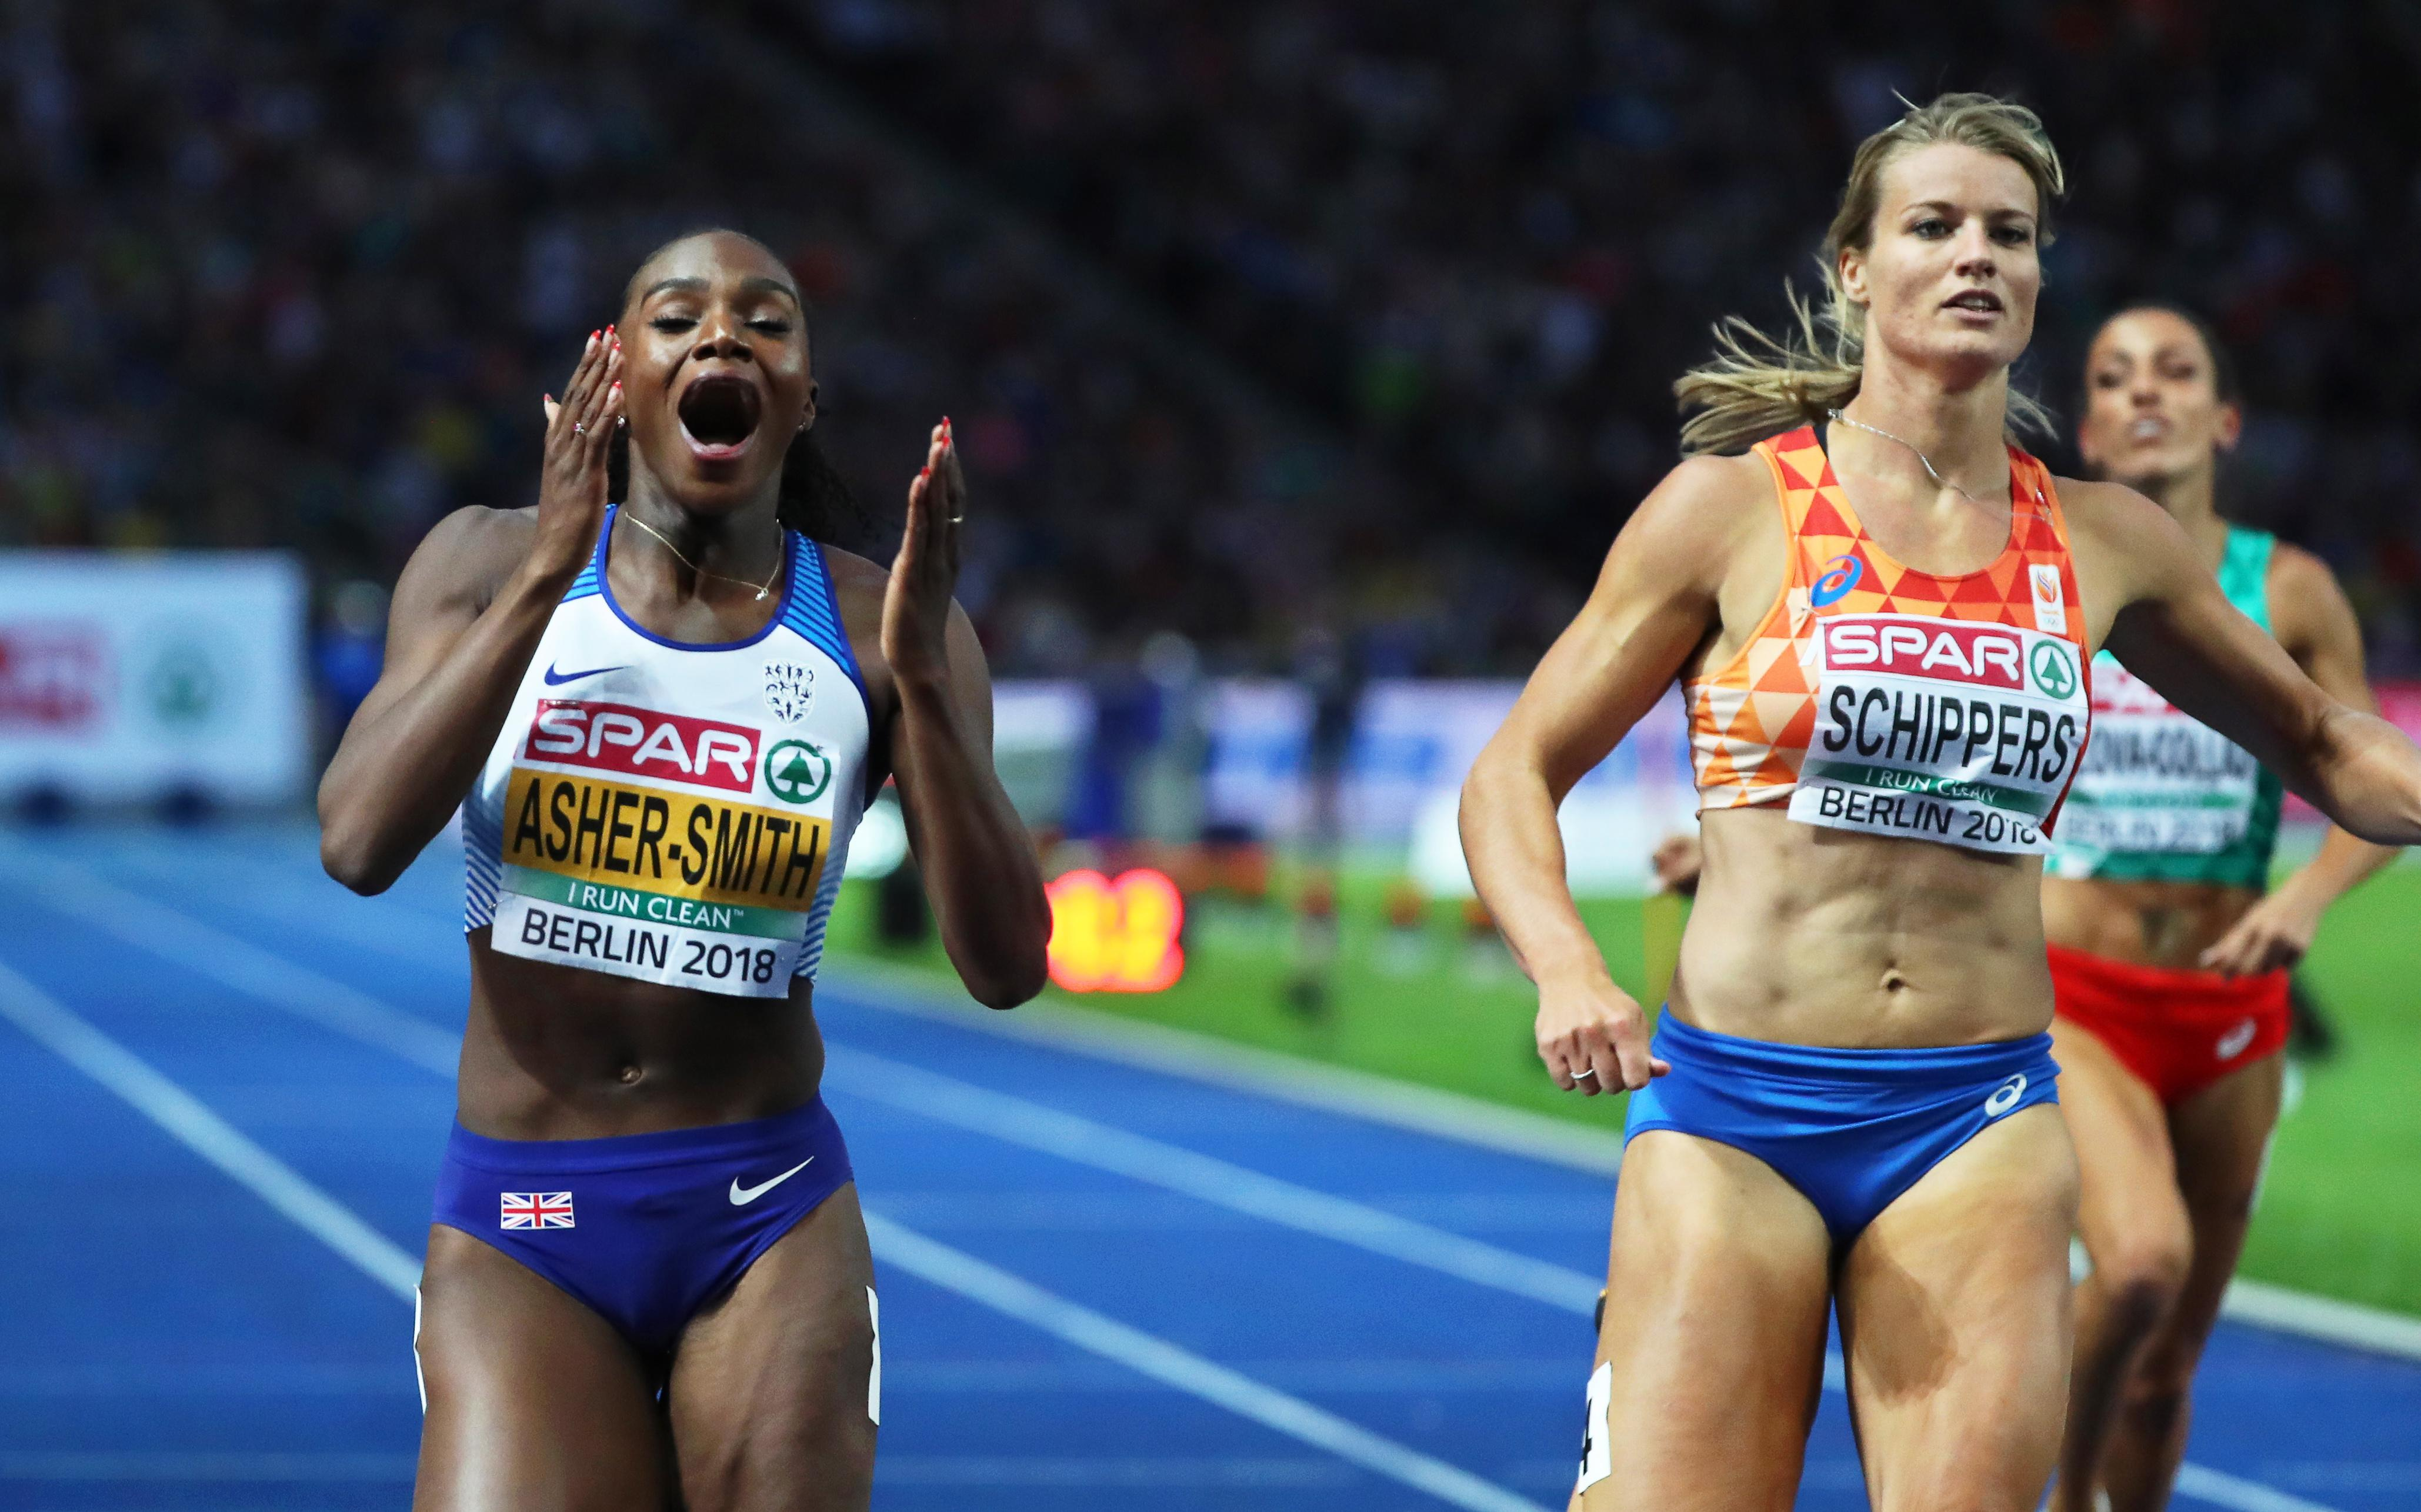 Dina Asher-Smith battled past dominant Dafne Schippers to clinch gold